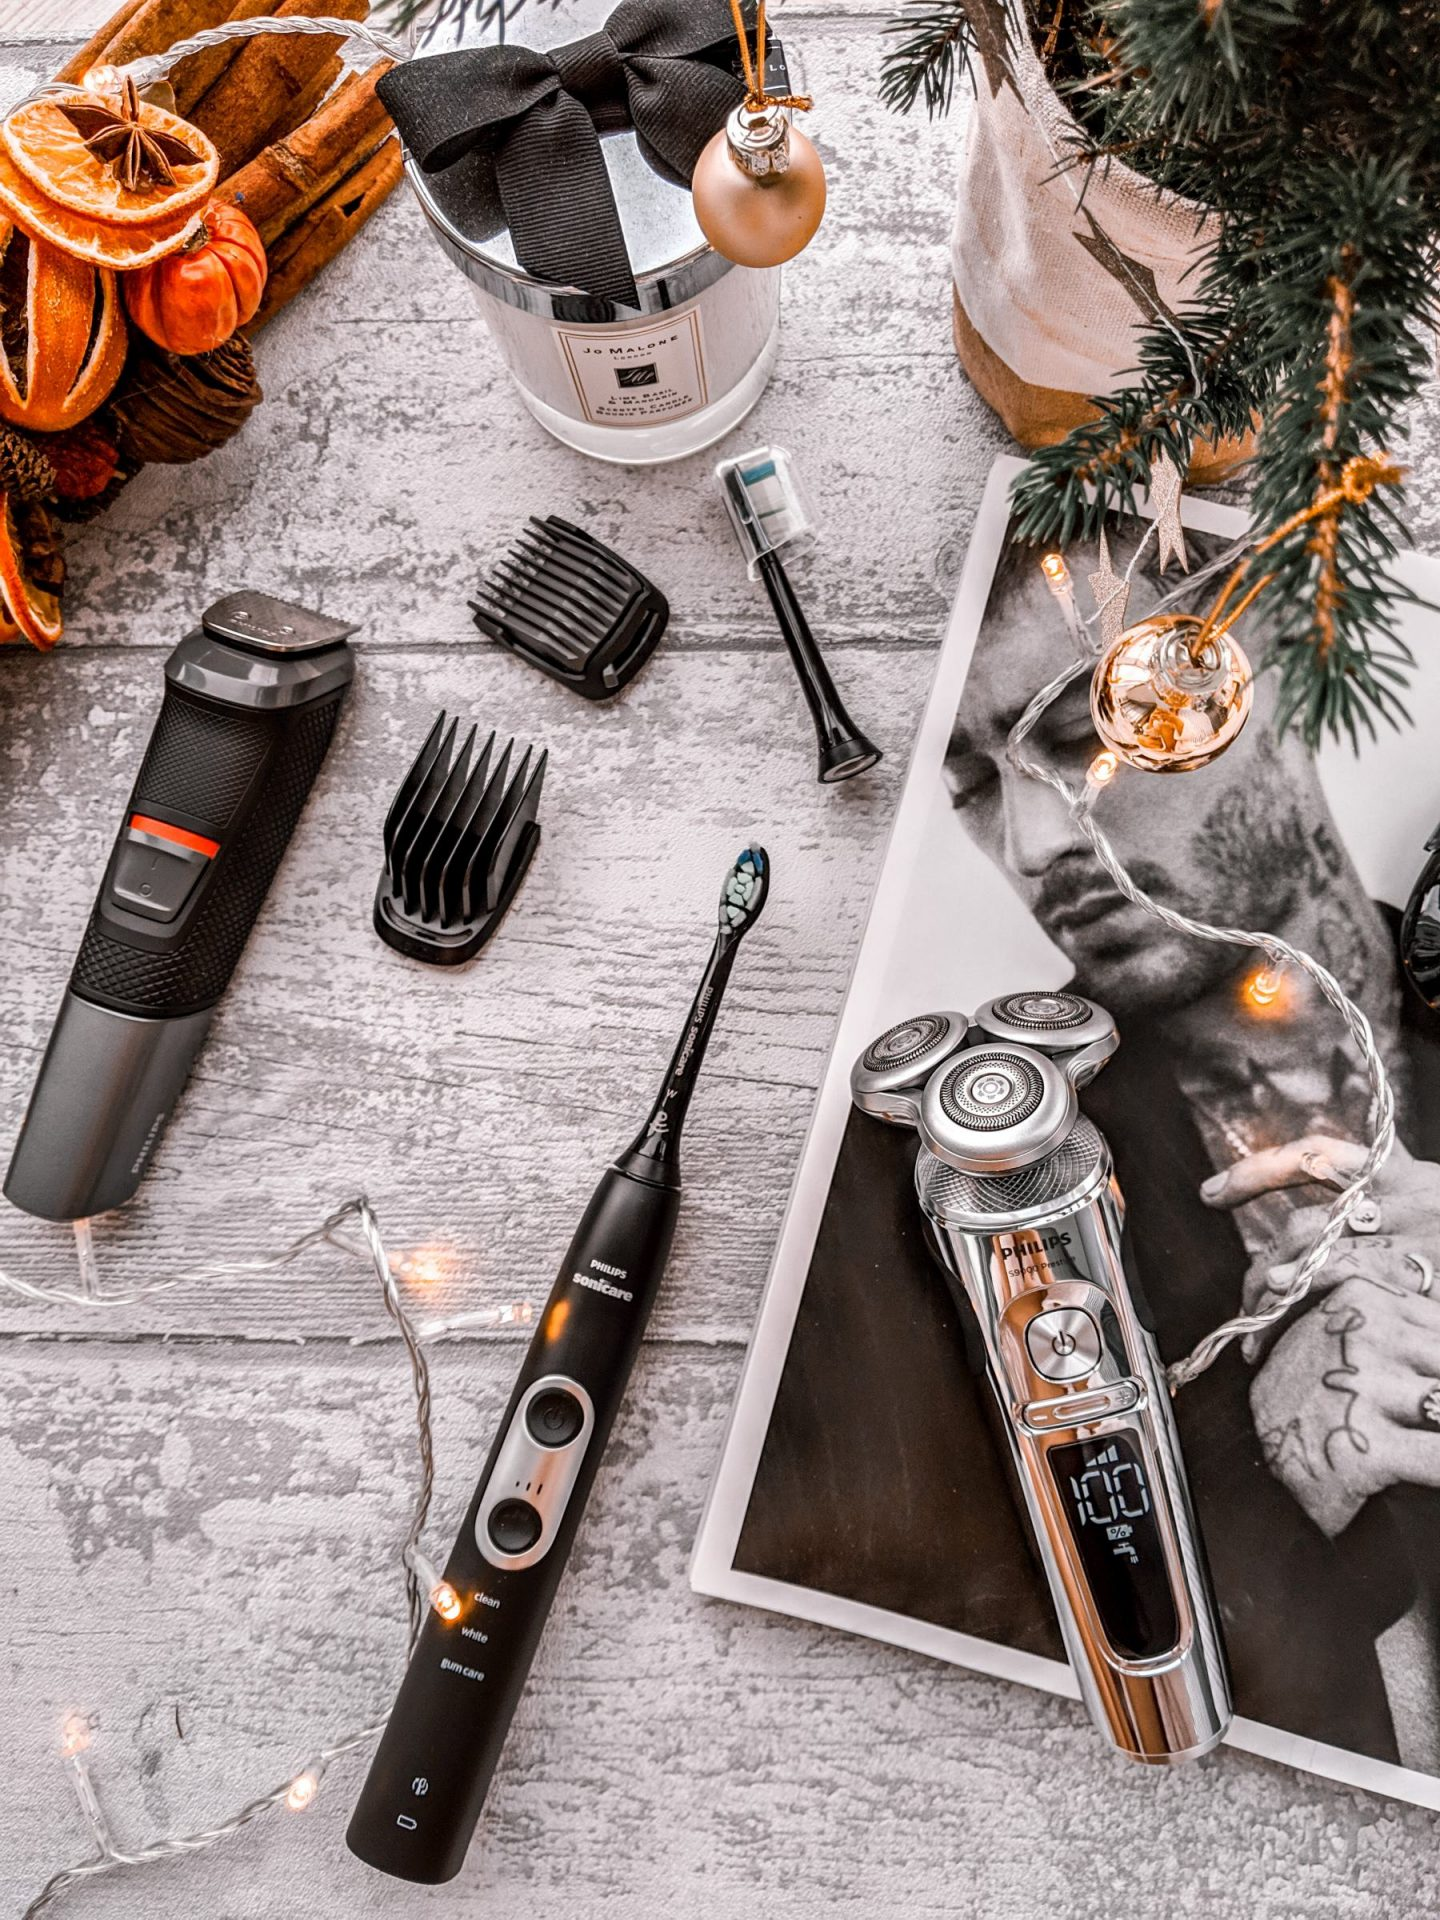 cocoa chelsea Philips beauty gift guide his hers electrical toothbrush ipl razor